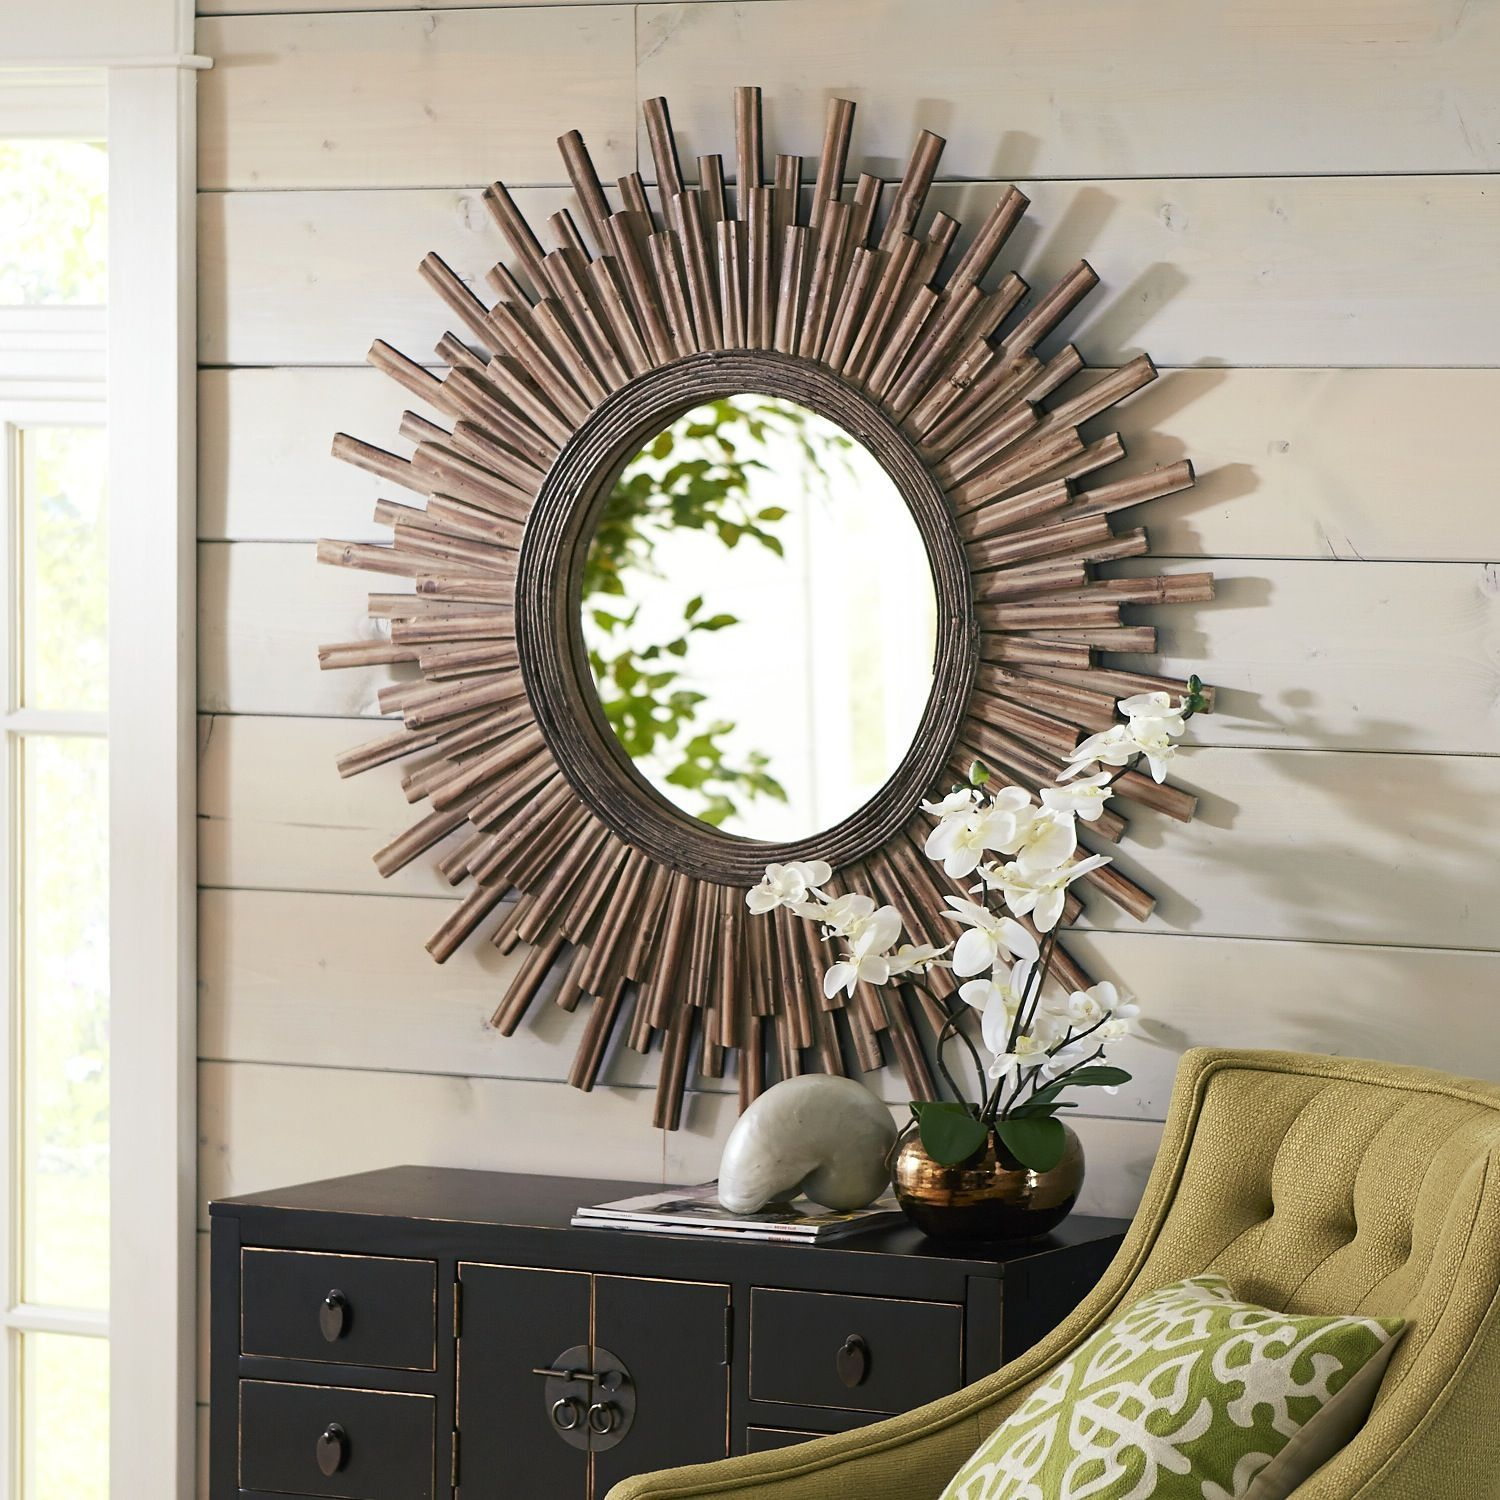 "Bedroom Kandi Natasha Hall Home: Canyon 42"" Round Mirror In 2019"